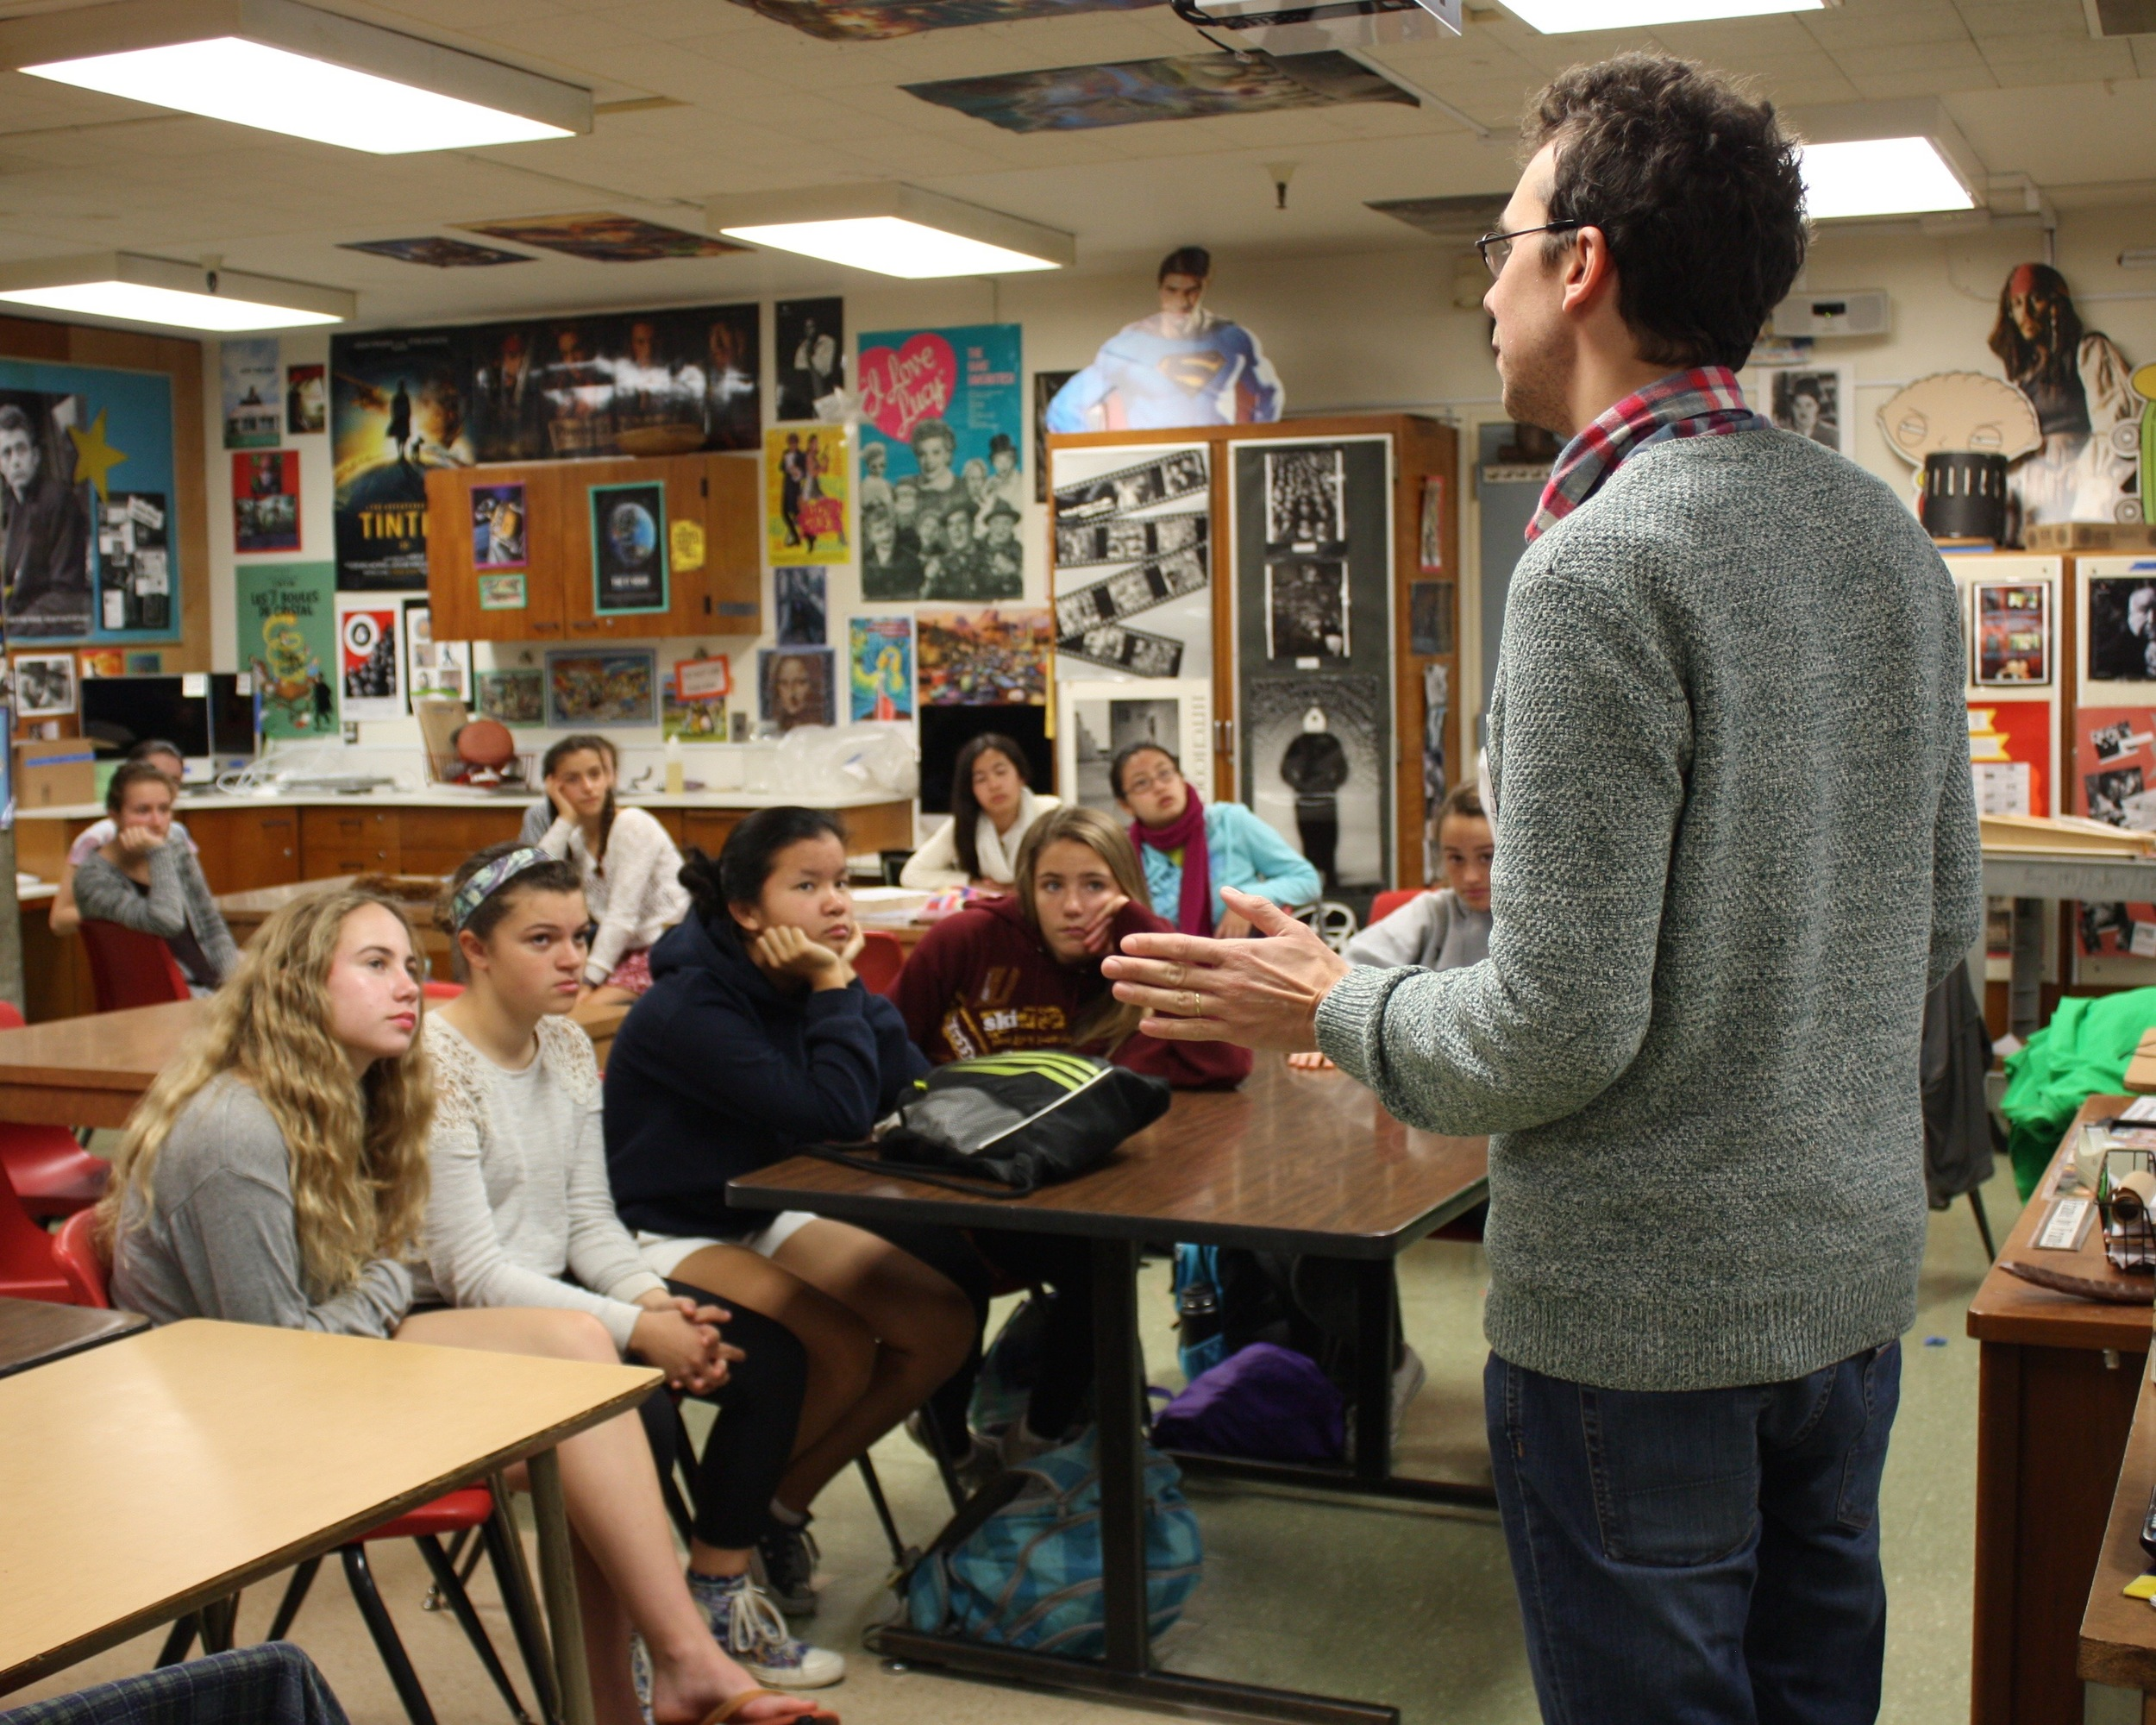 Louis speaking to students about his film